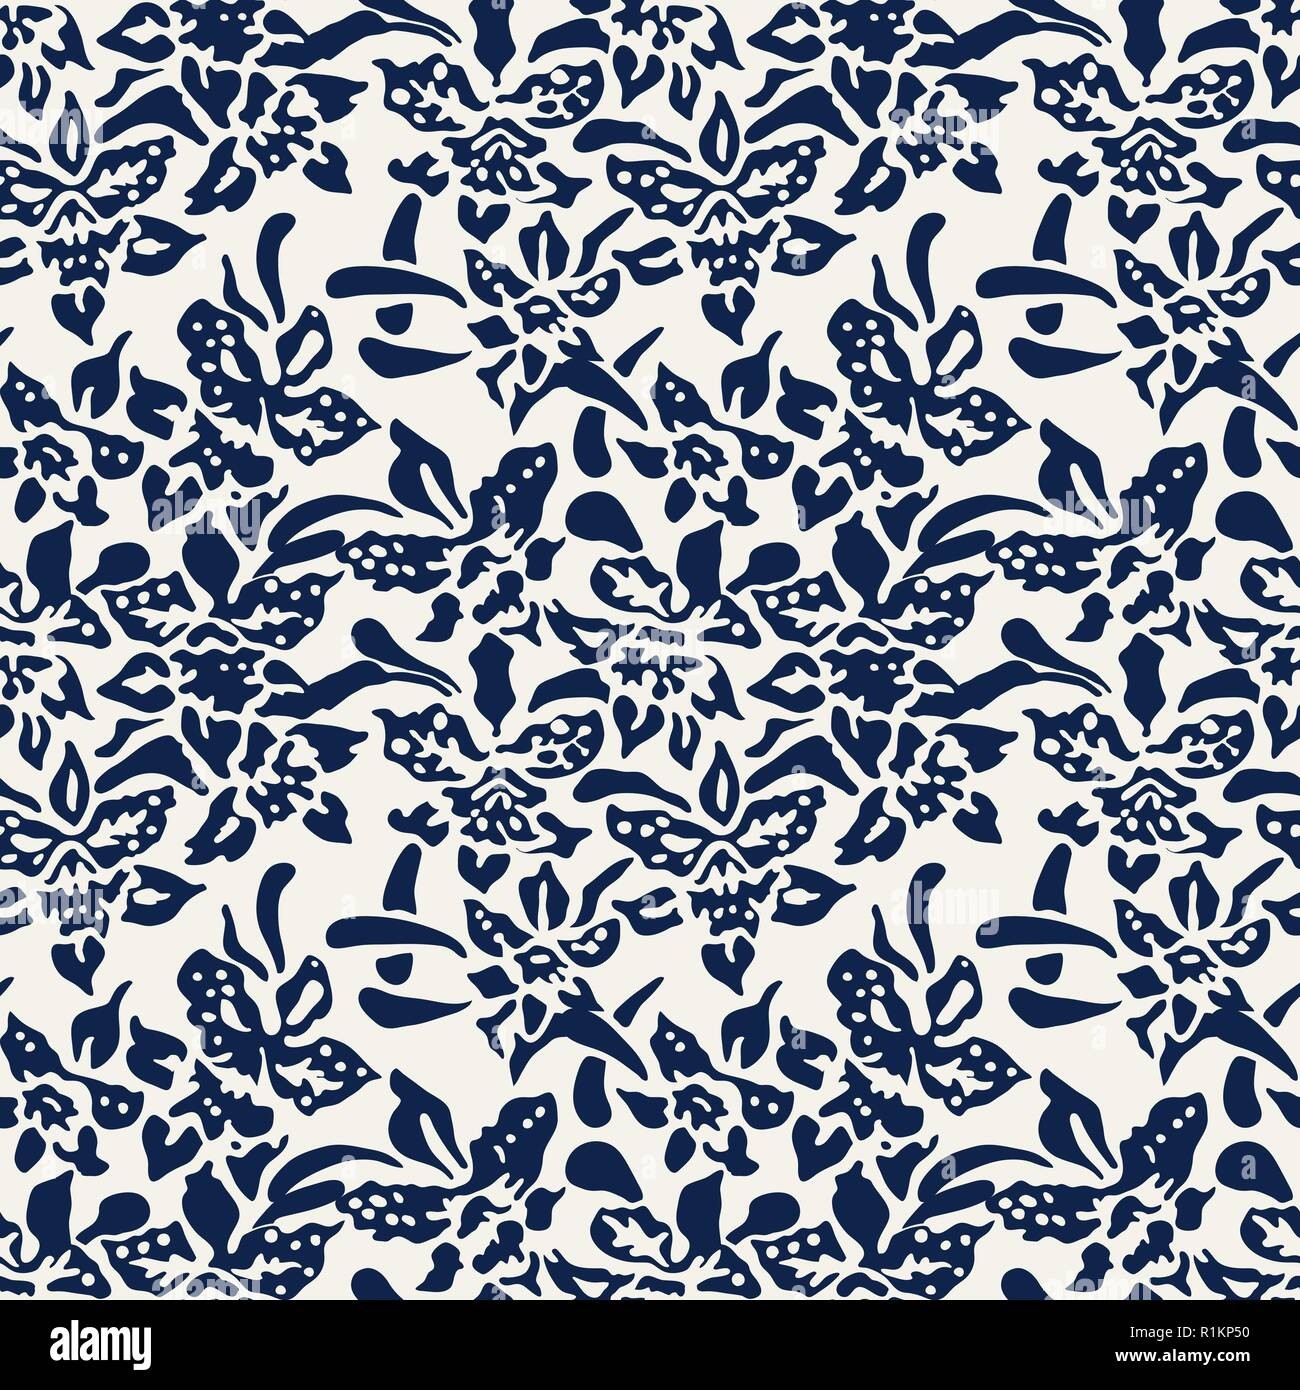 Seamless Indigo Dye Woodblock Printed Floral Pattern Traditional